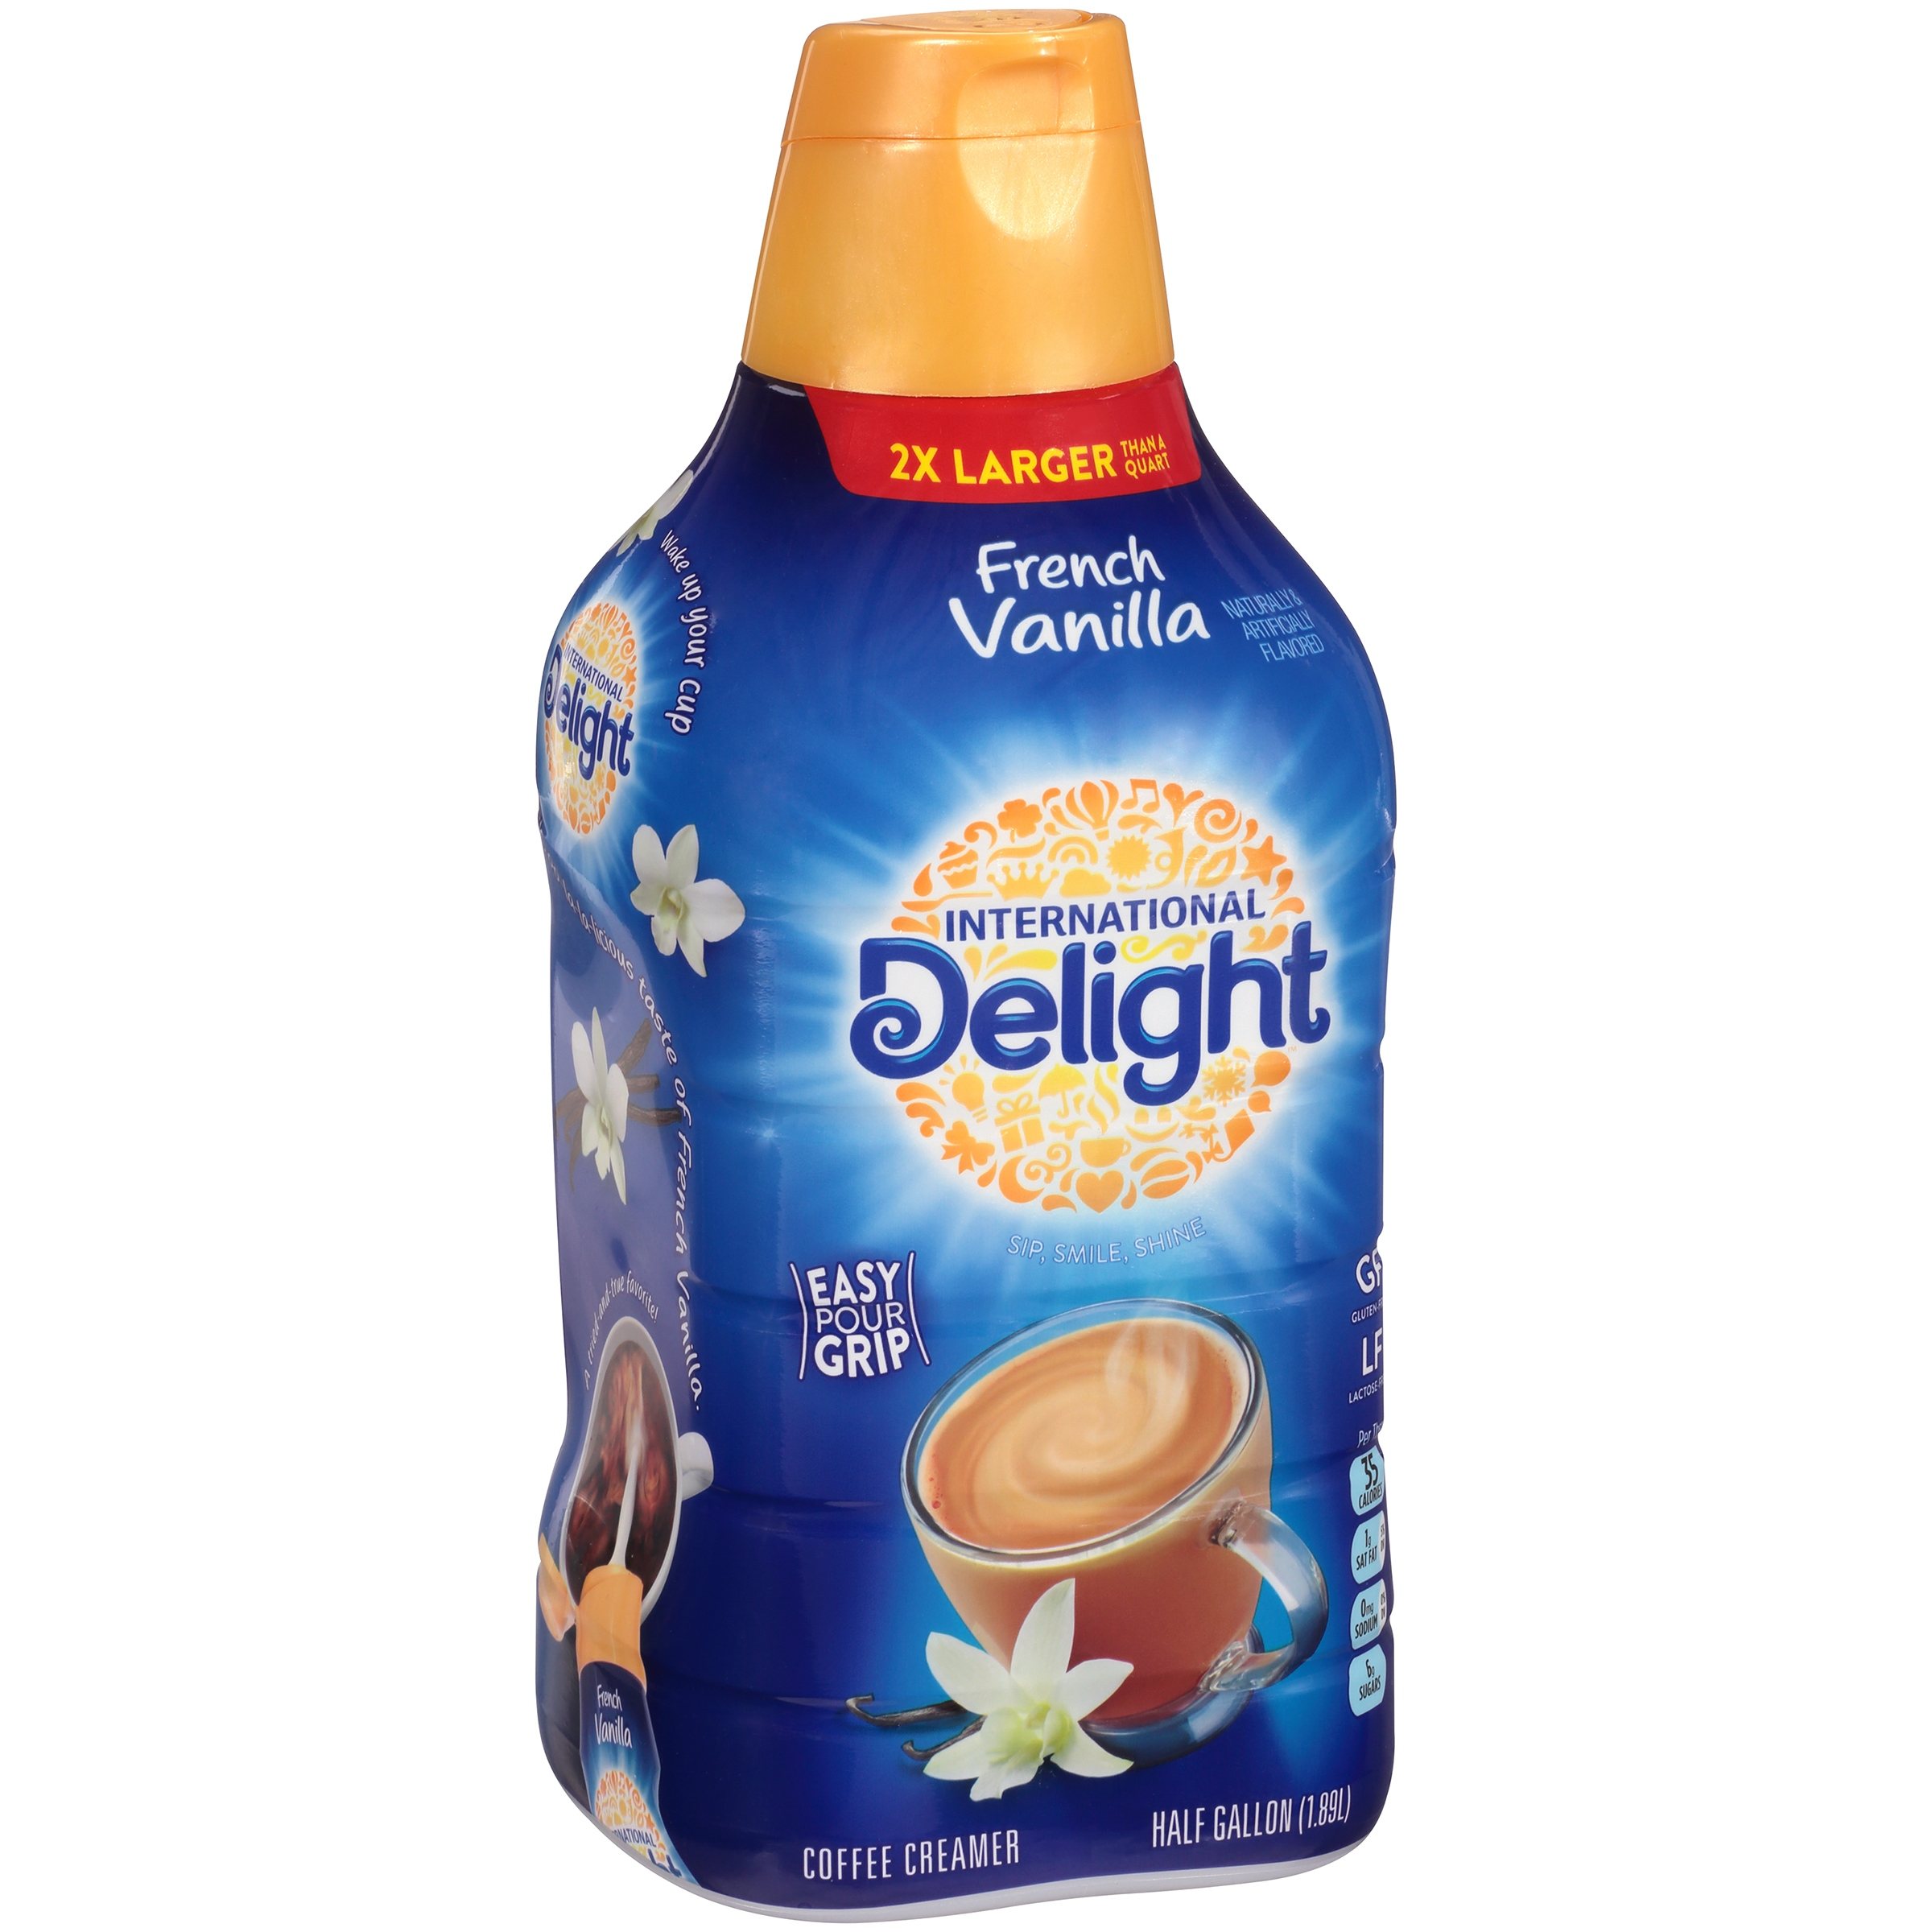 International Delight, Cold Stone Creamery Sweet Cream, Single-Serve Coffee Creamers, Count, Shelf Stable Non-Dairy Flavored Coffee Creamer, Great for Home Use, Offices, Parties or Group Events.